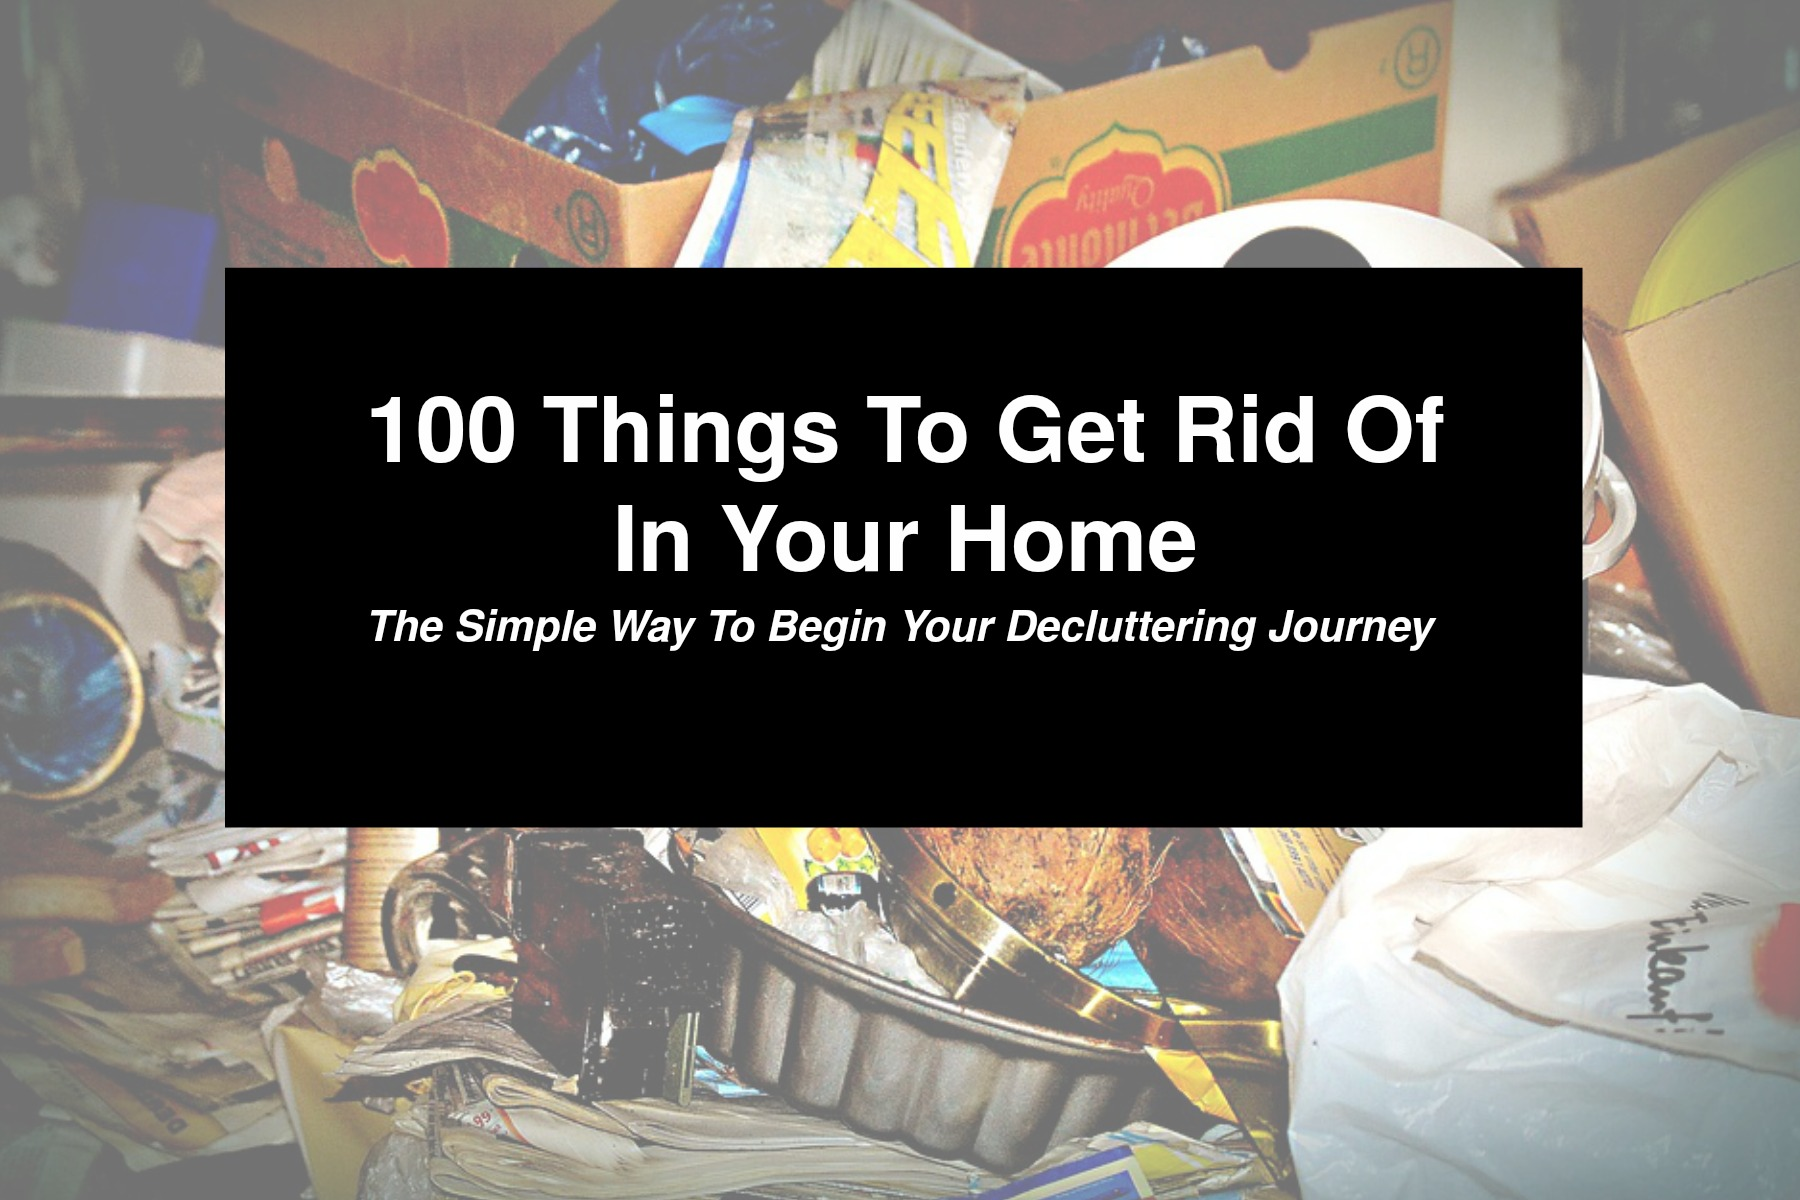 100 Things To Get Rid Of In Your Home Marilyn K Foster